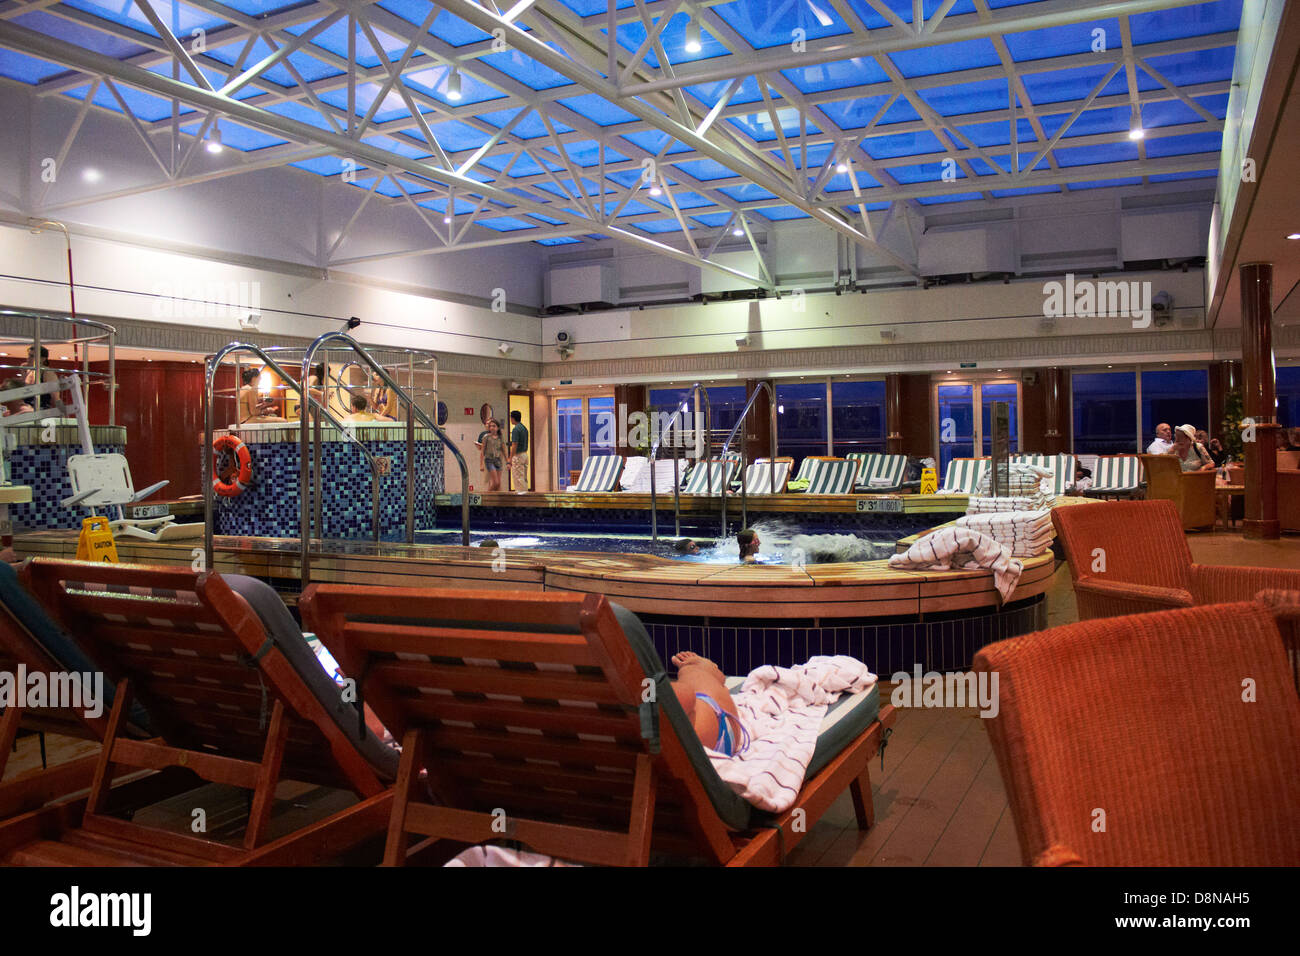 Close Up Details Of Cunard 39 S Queen Mary 2 Ocean Liner Indoor Swimming Stock Photo Royalty Free